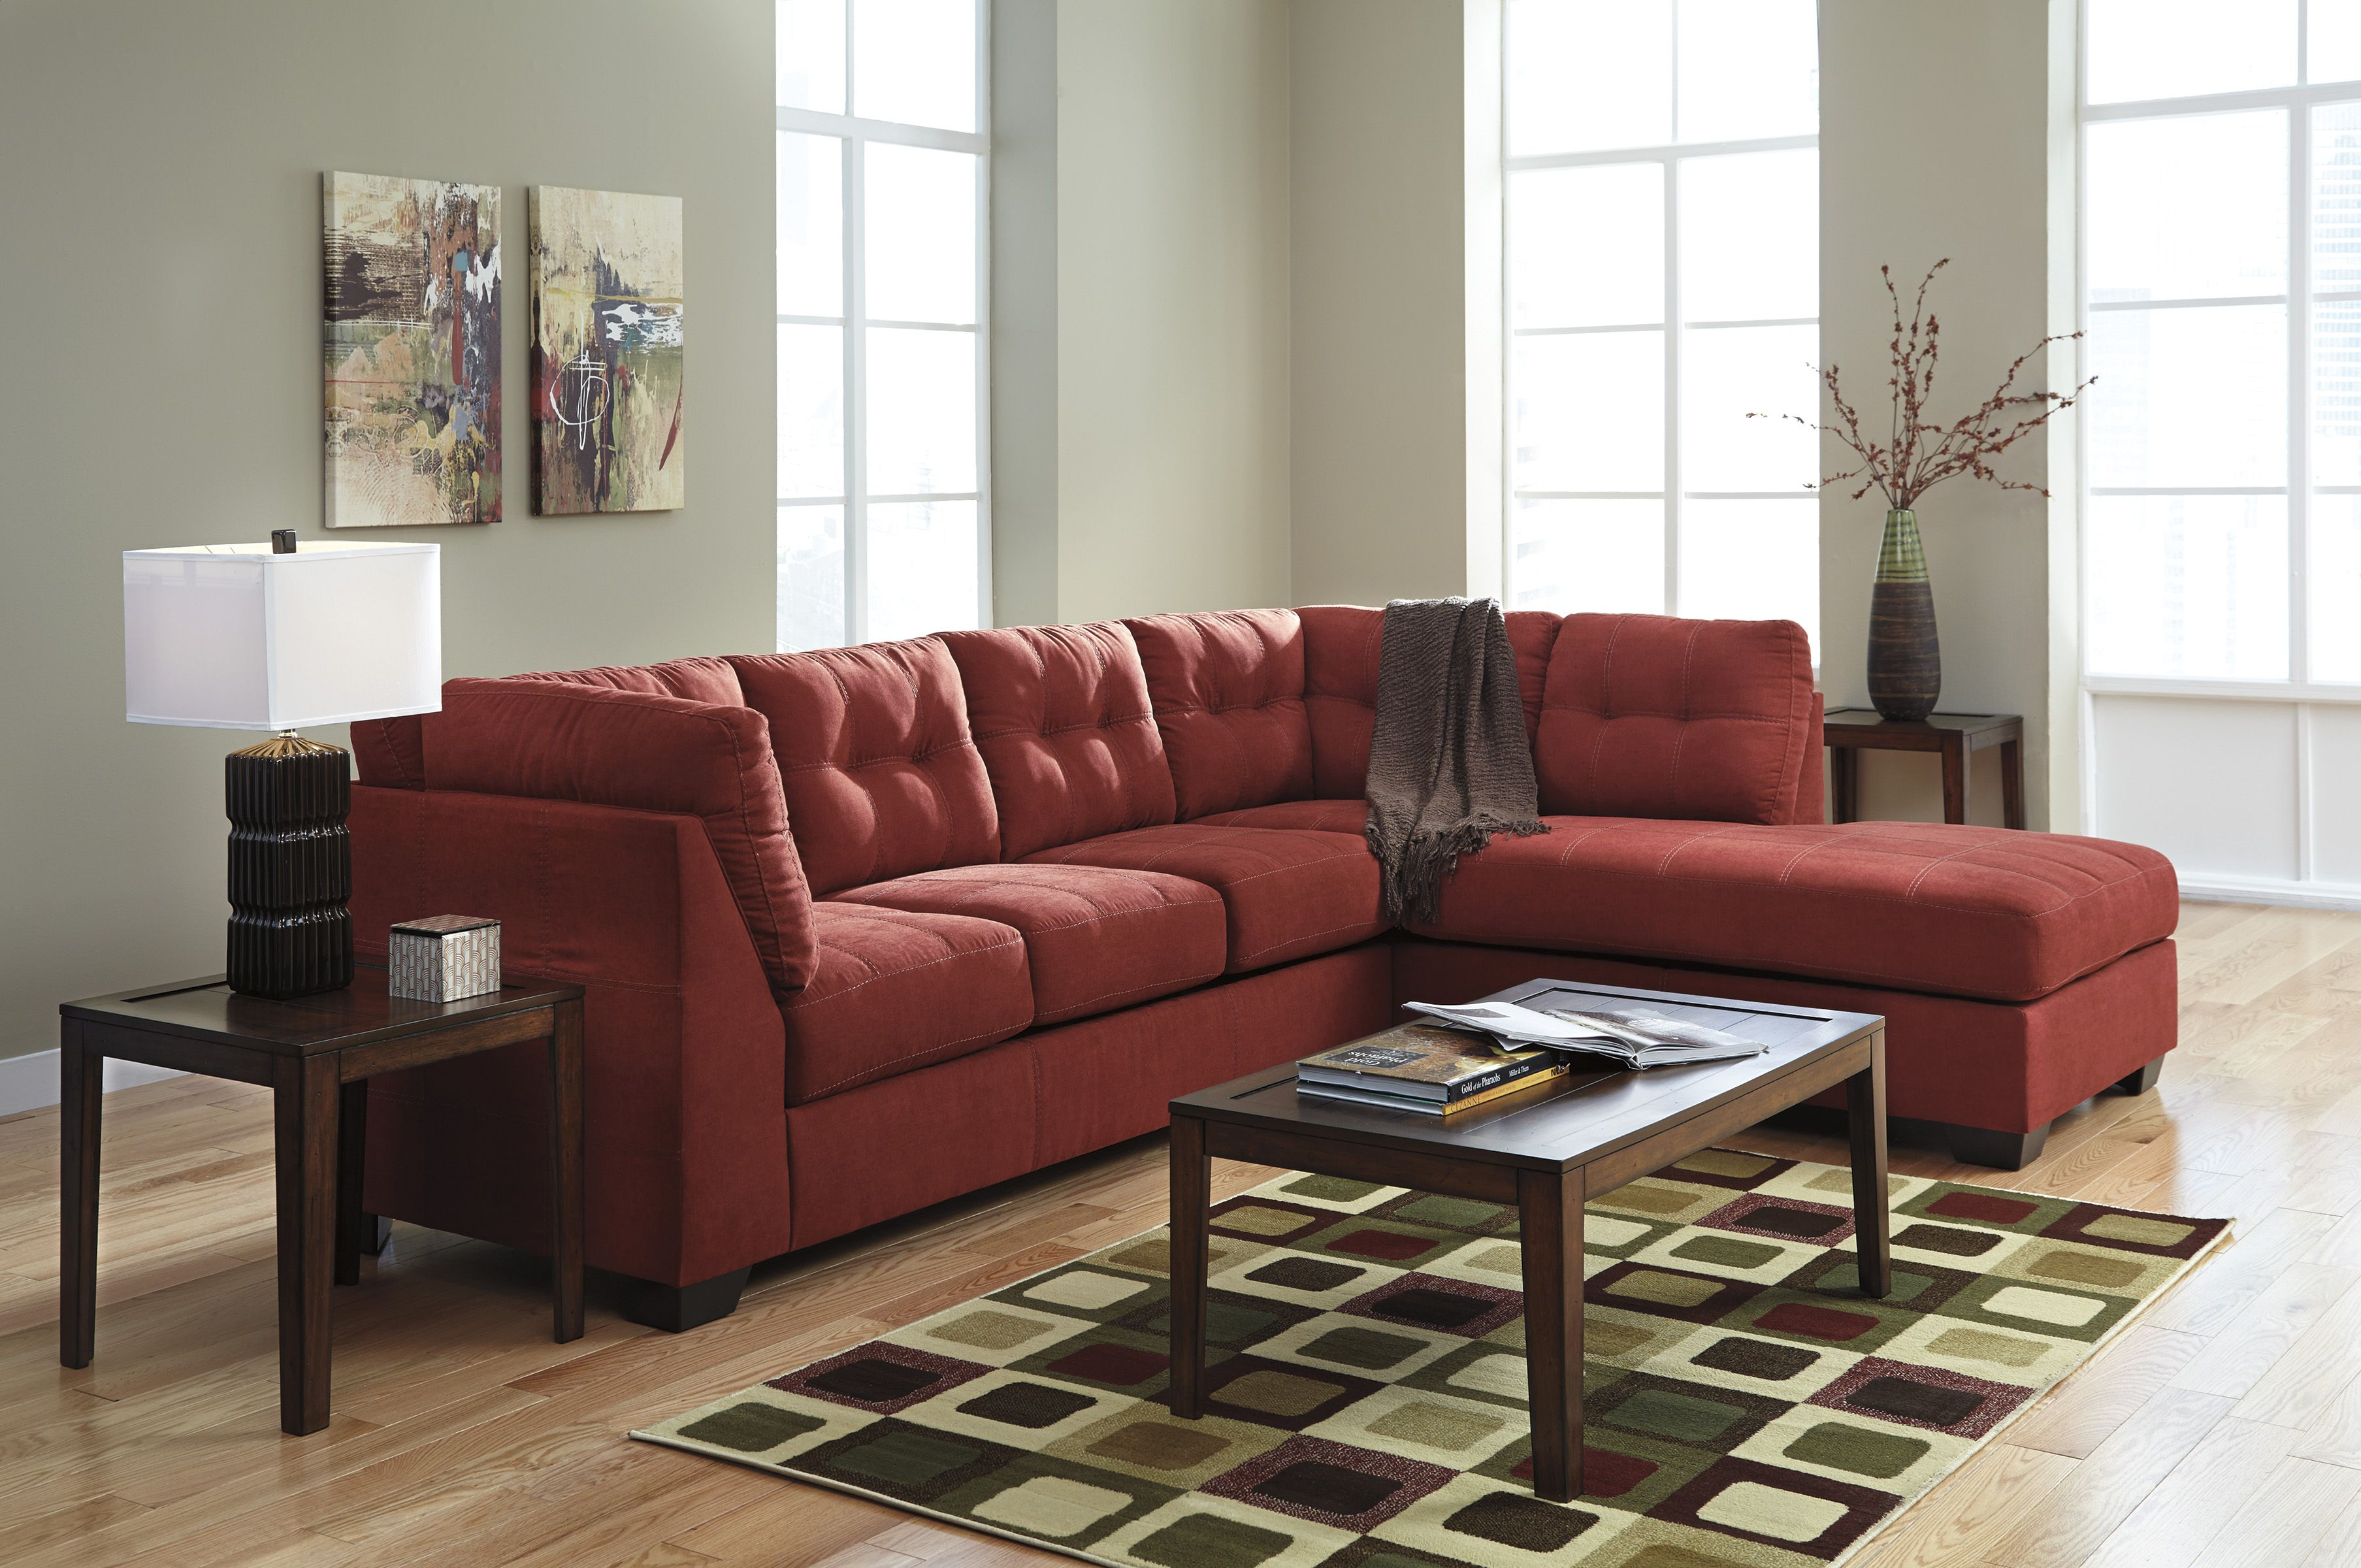 Maier sectional Only For 1099 3 COLOR OPTIONS AVAILABLE